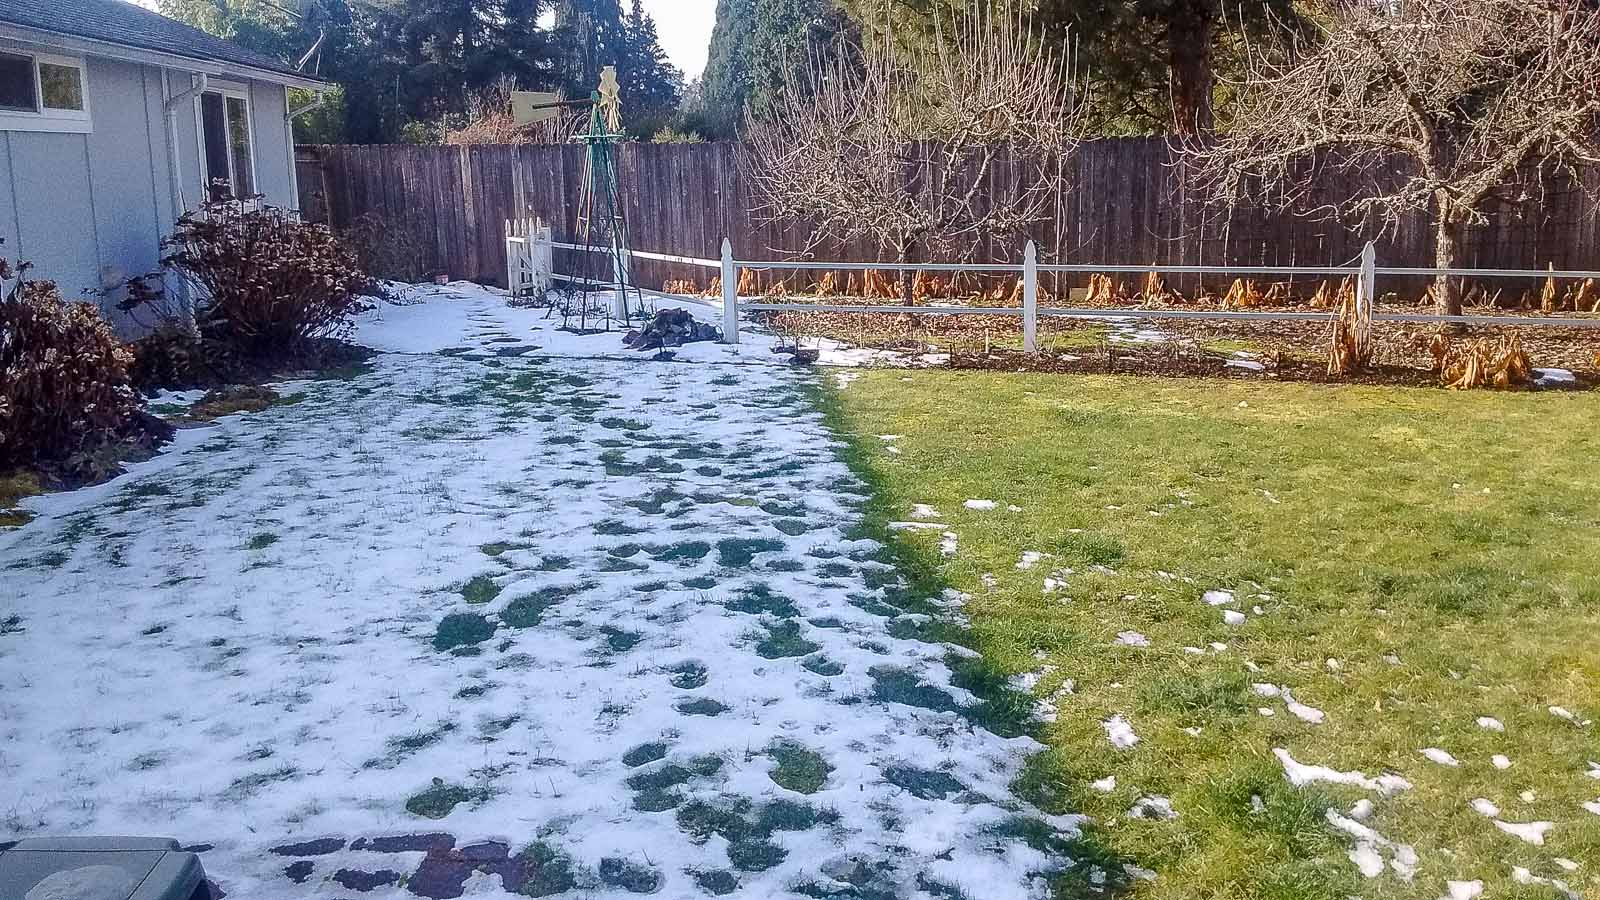 snow is thawing - prepare for early spring